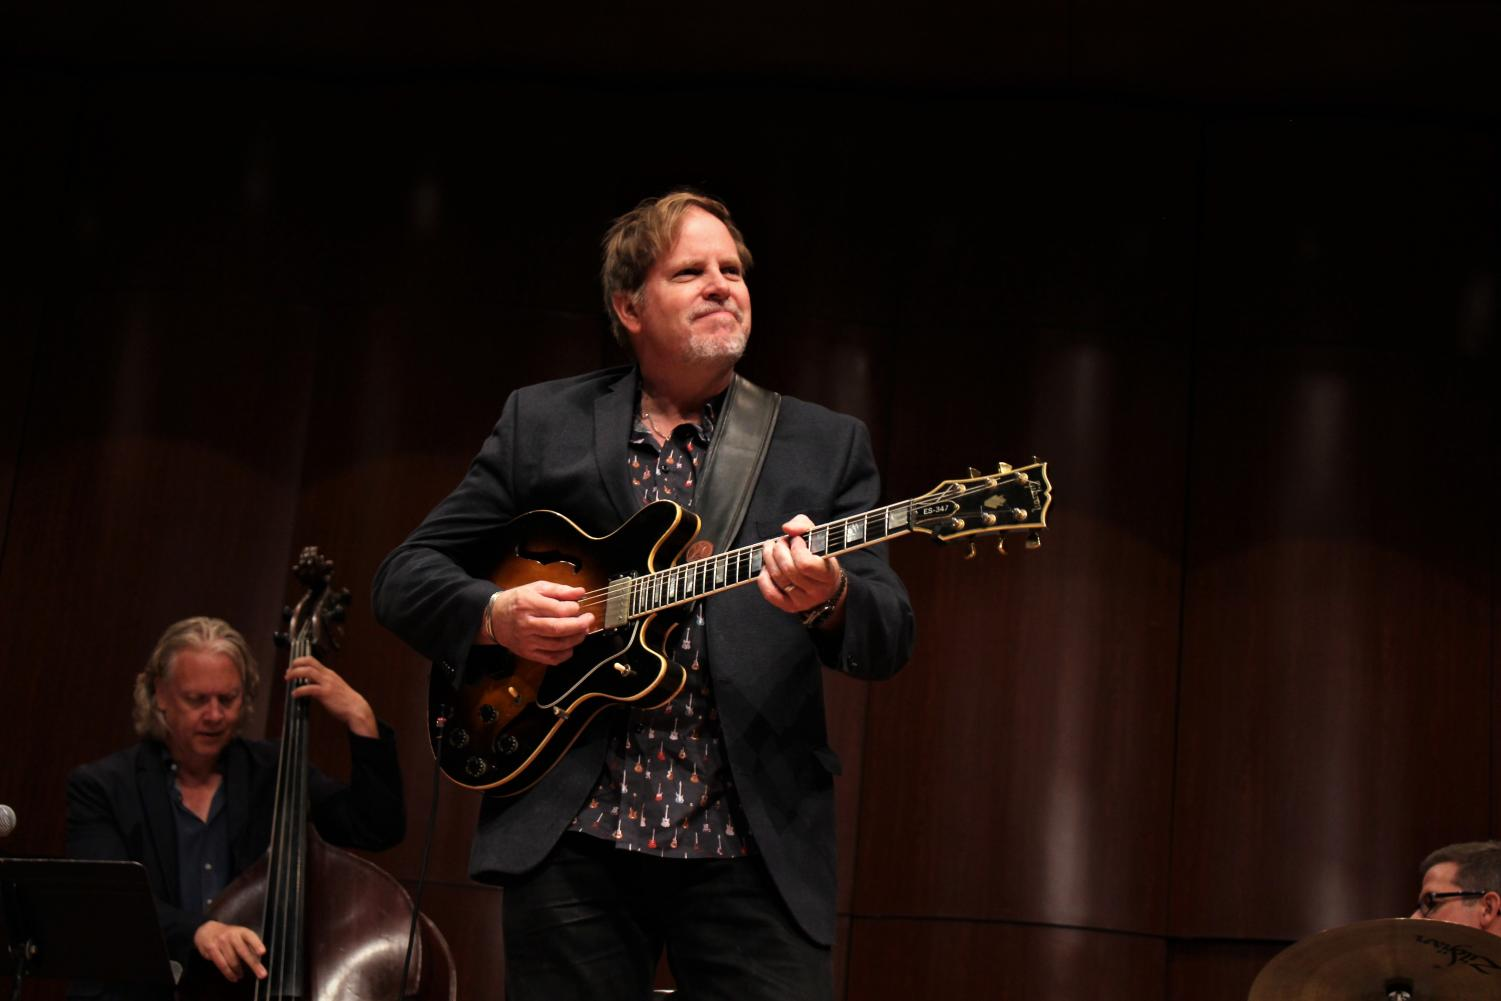 Dave Stryker performs with the UTEP commercial music faculty combo at Fox Fine Arts Recital Hall on Oct. 3, 2018.